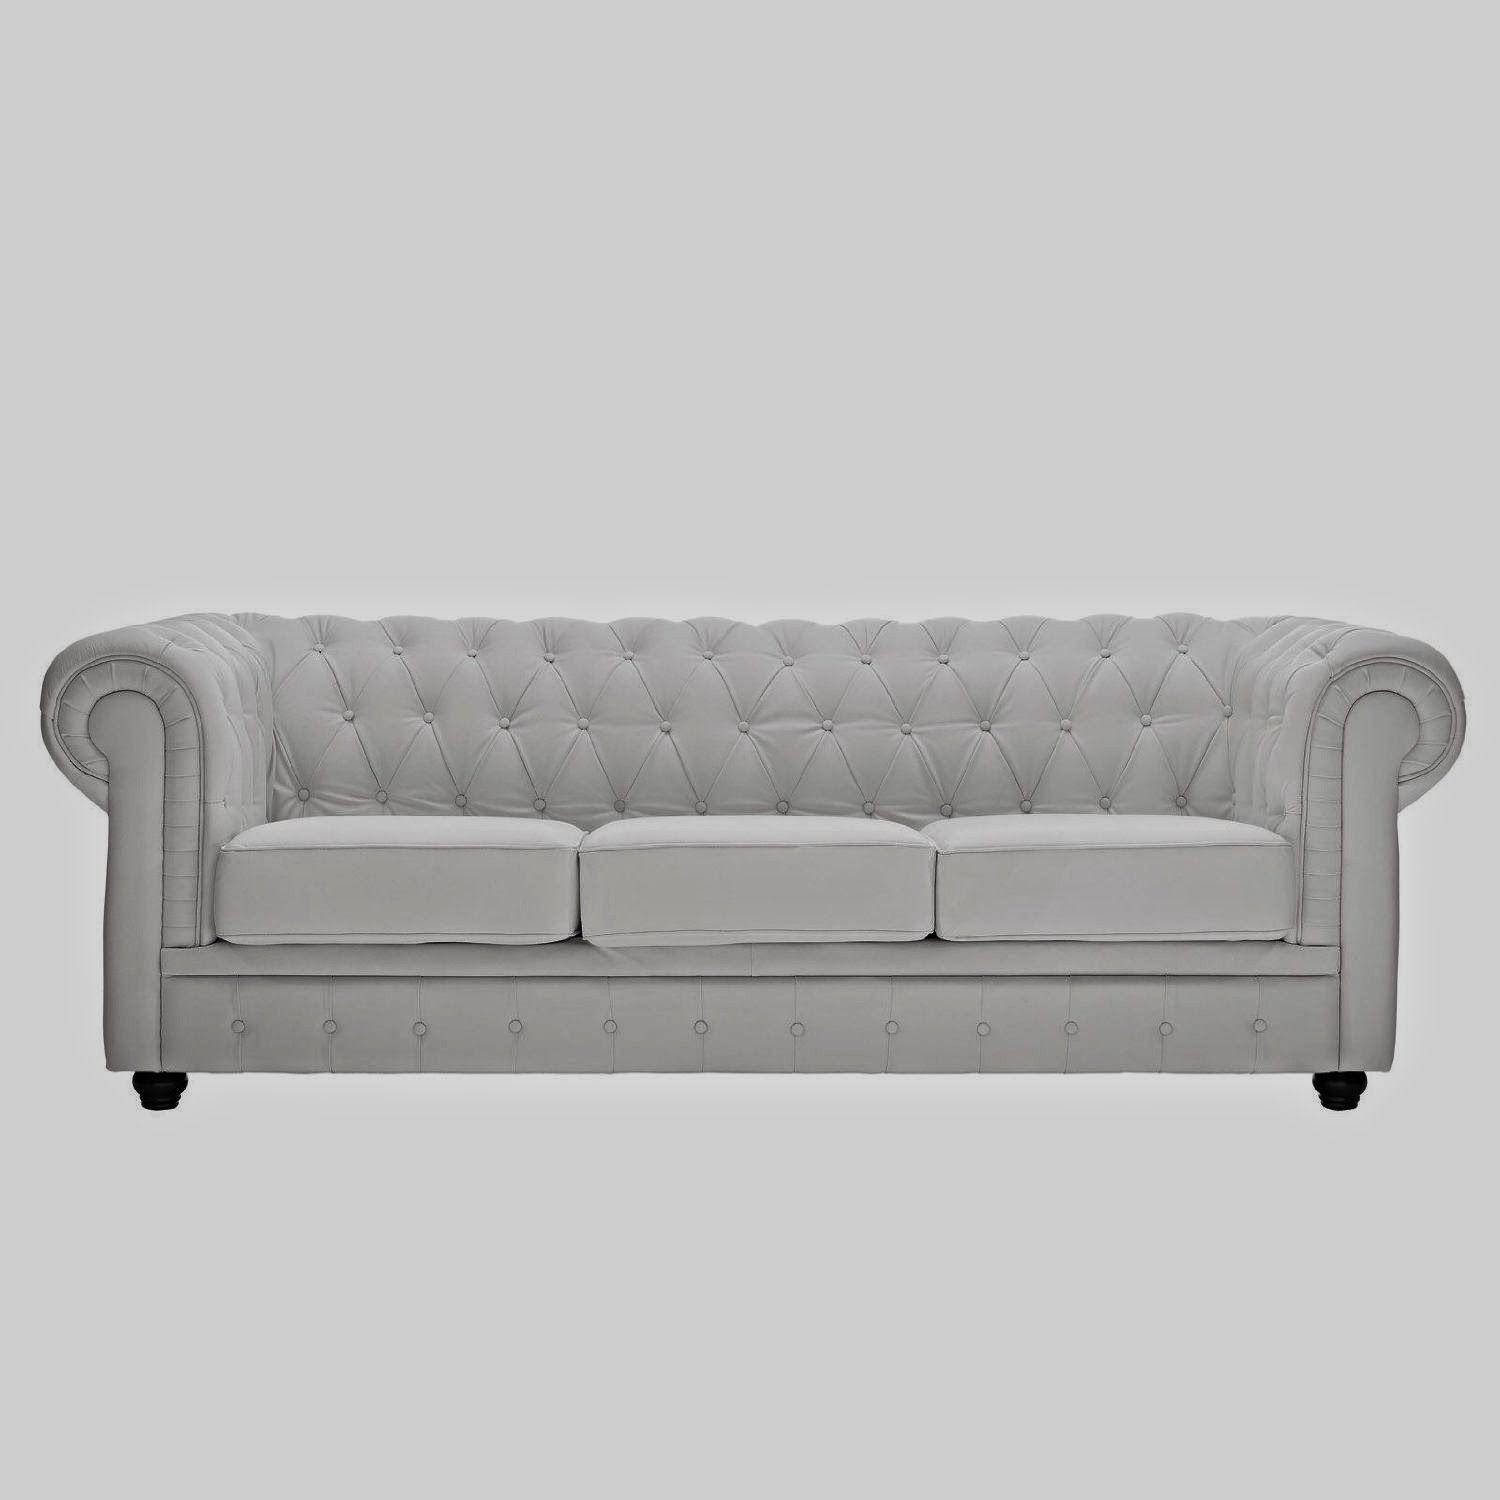 cool White Tufted Couch , New White Tufted Couch 61 For Living Room ...